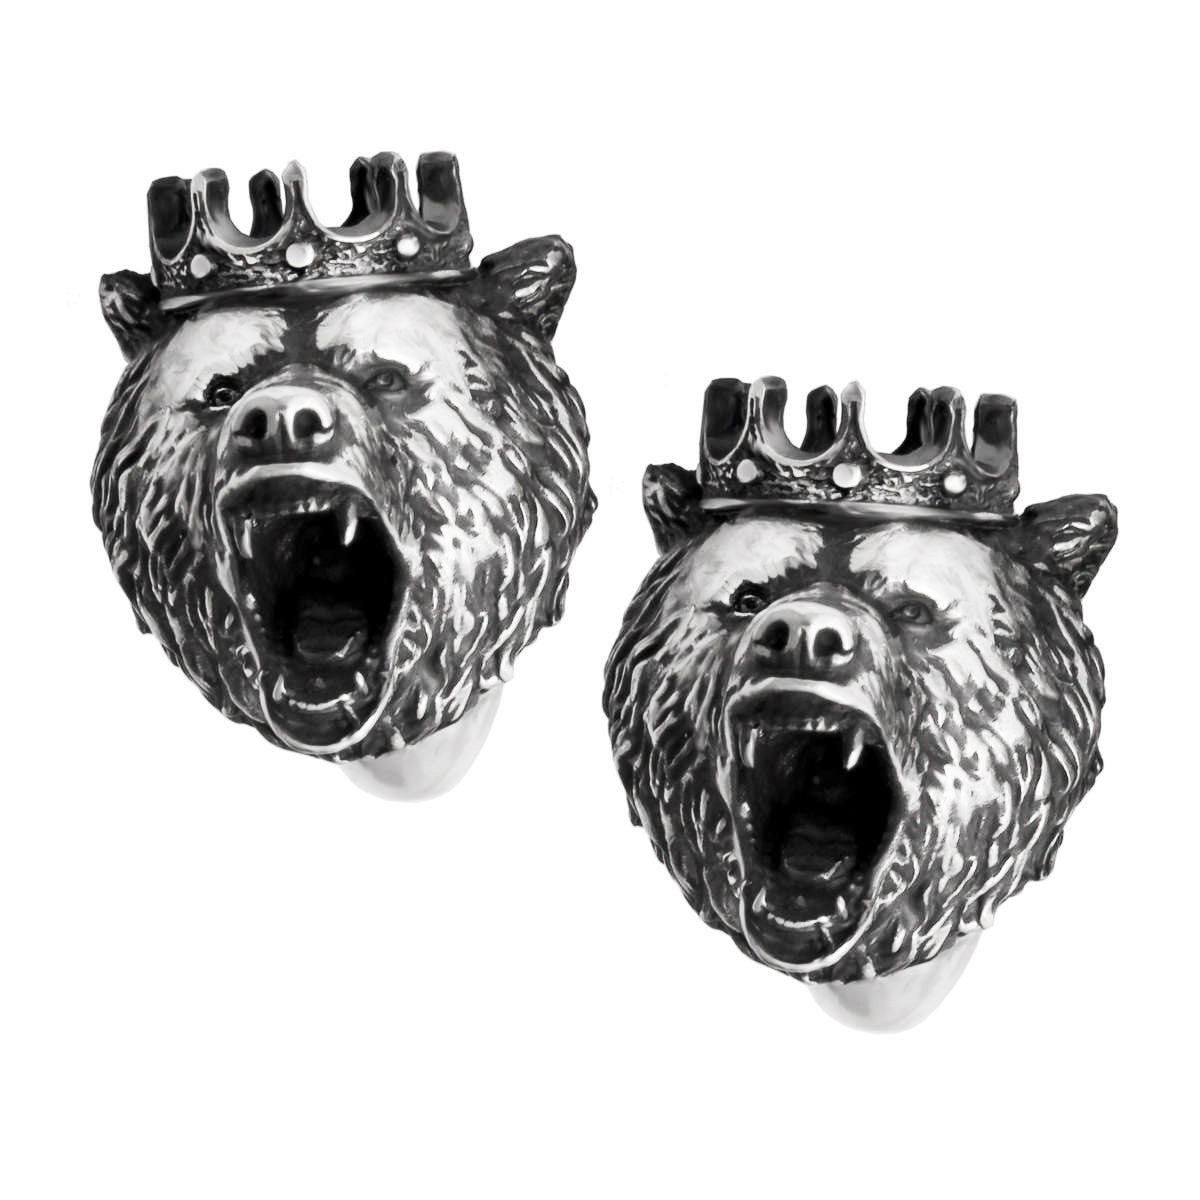 King Bear Cufflinks